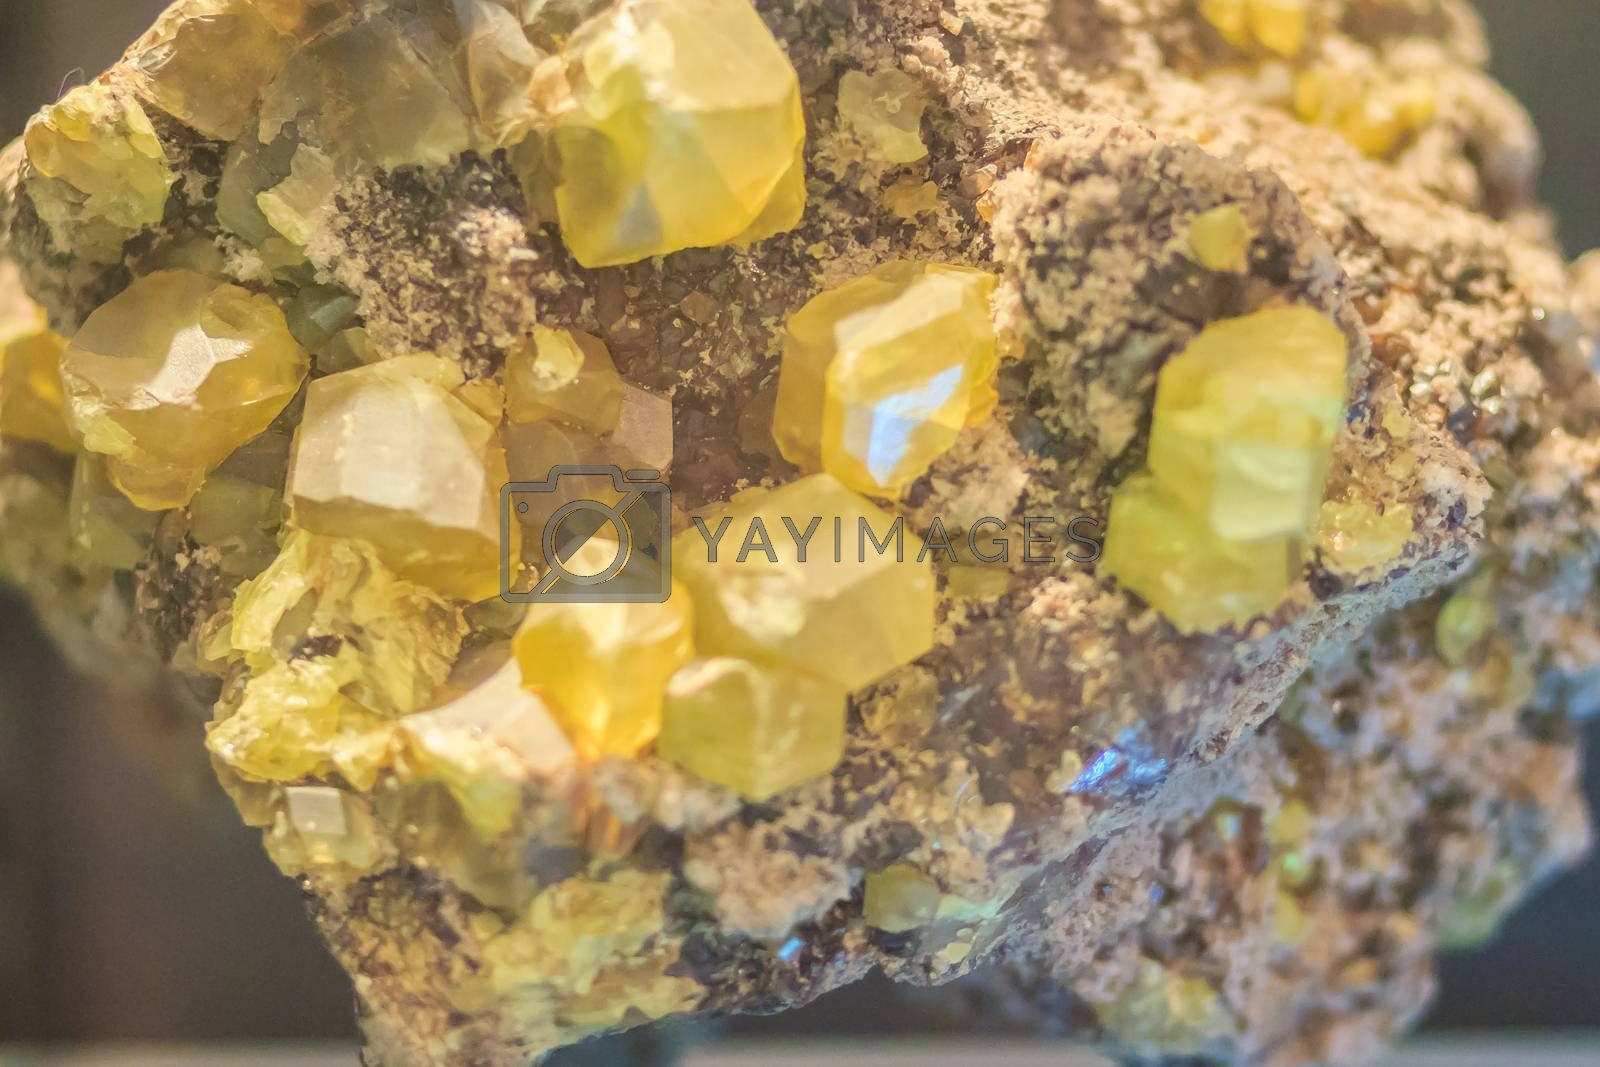 Sulphur crystal granular habit rock specimen from mining and quarrying. Sulfur or sulphur is a chemical element with symbol S and atomic number 16. It is abundant, multivalent, and nonmetallic.